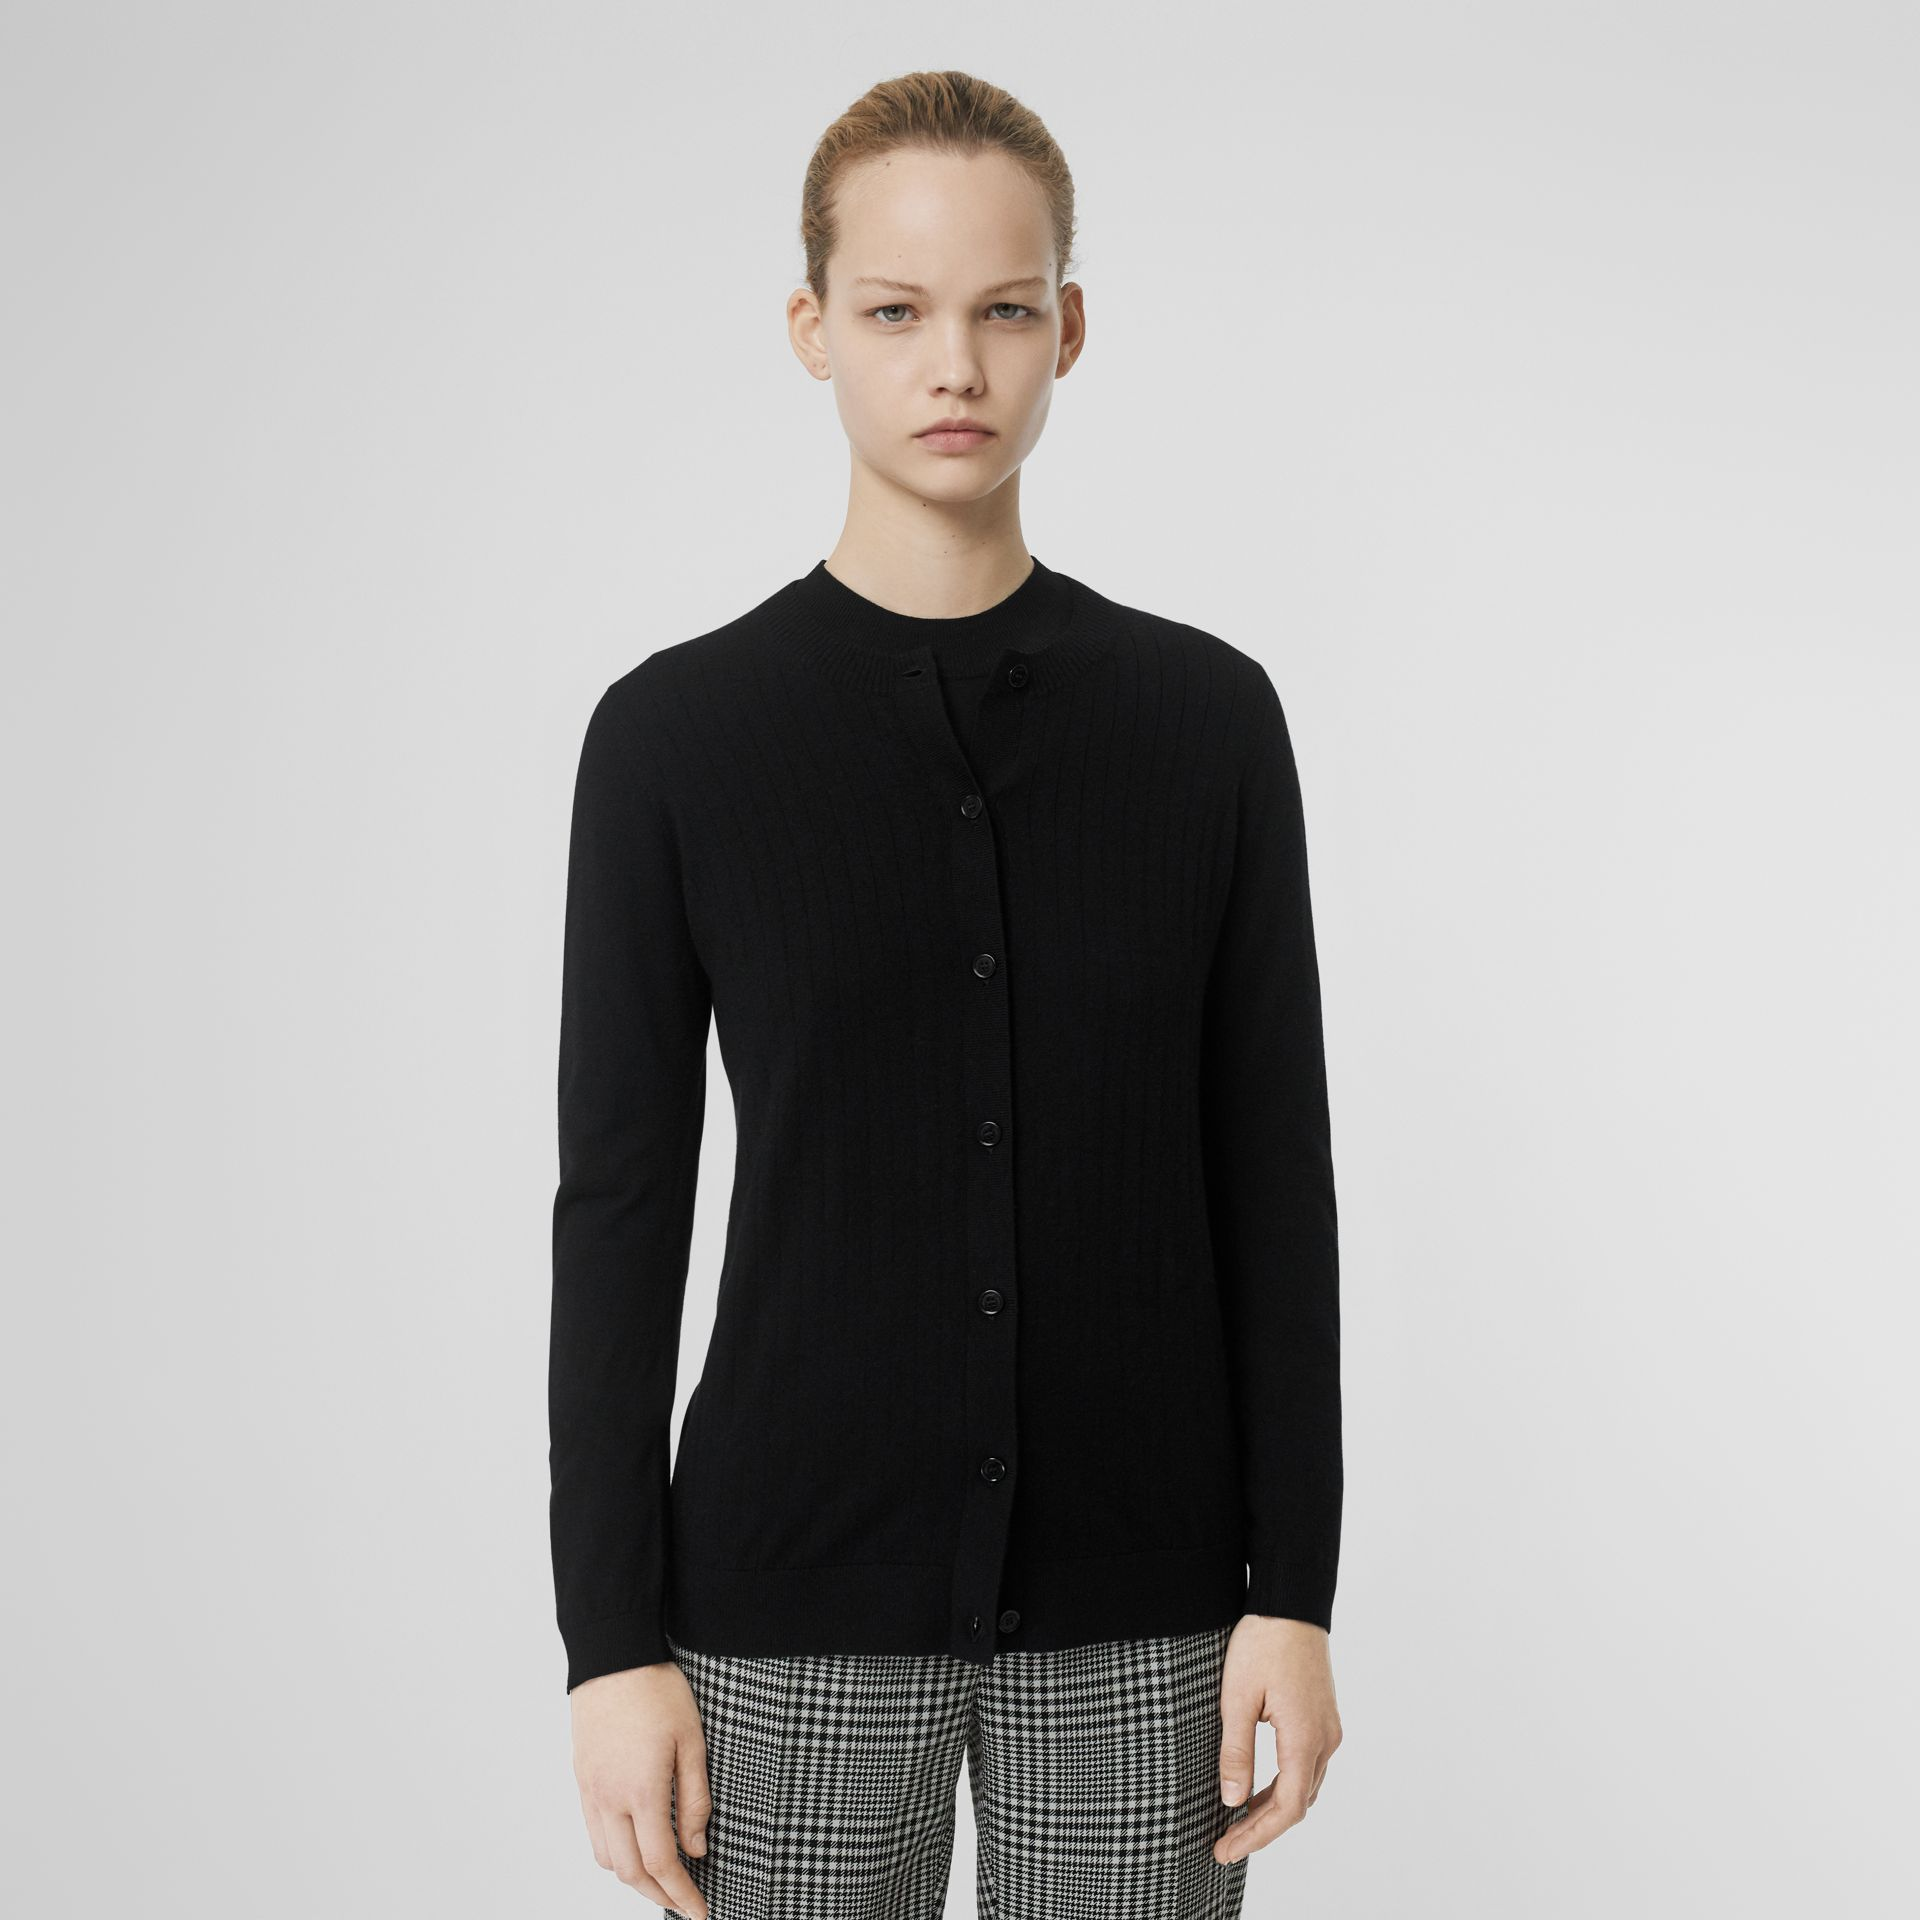 Rib Knit Cashmere Cardigan in Black - Women | Burberry - gallery image 5